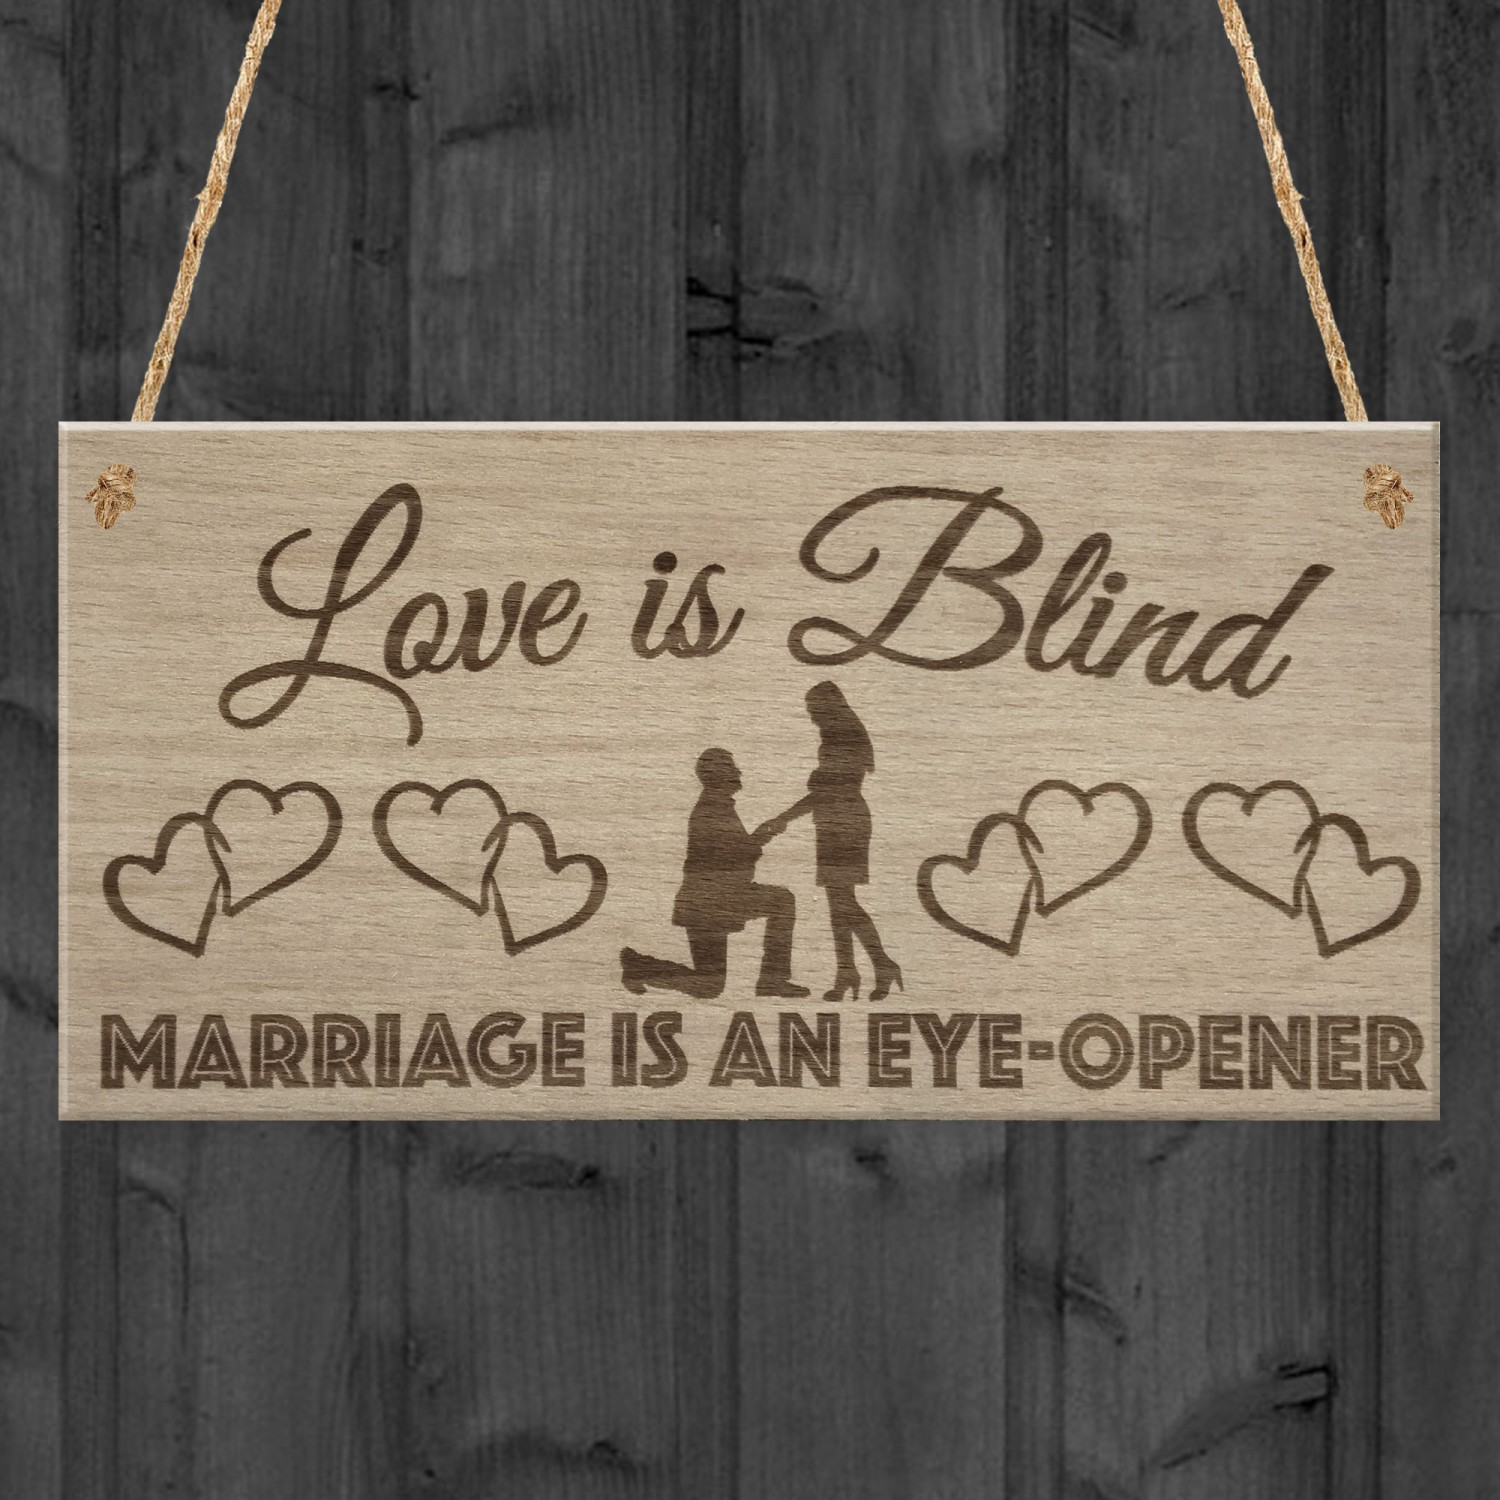 Funny Wedding Gifts.Love Is Blind Marriage Funny Wedding Gift Married Hanging Plaque